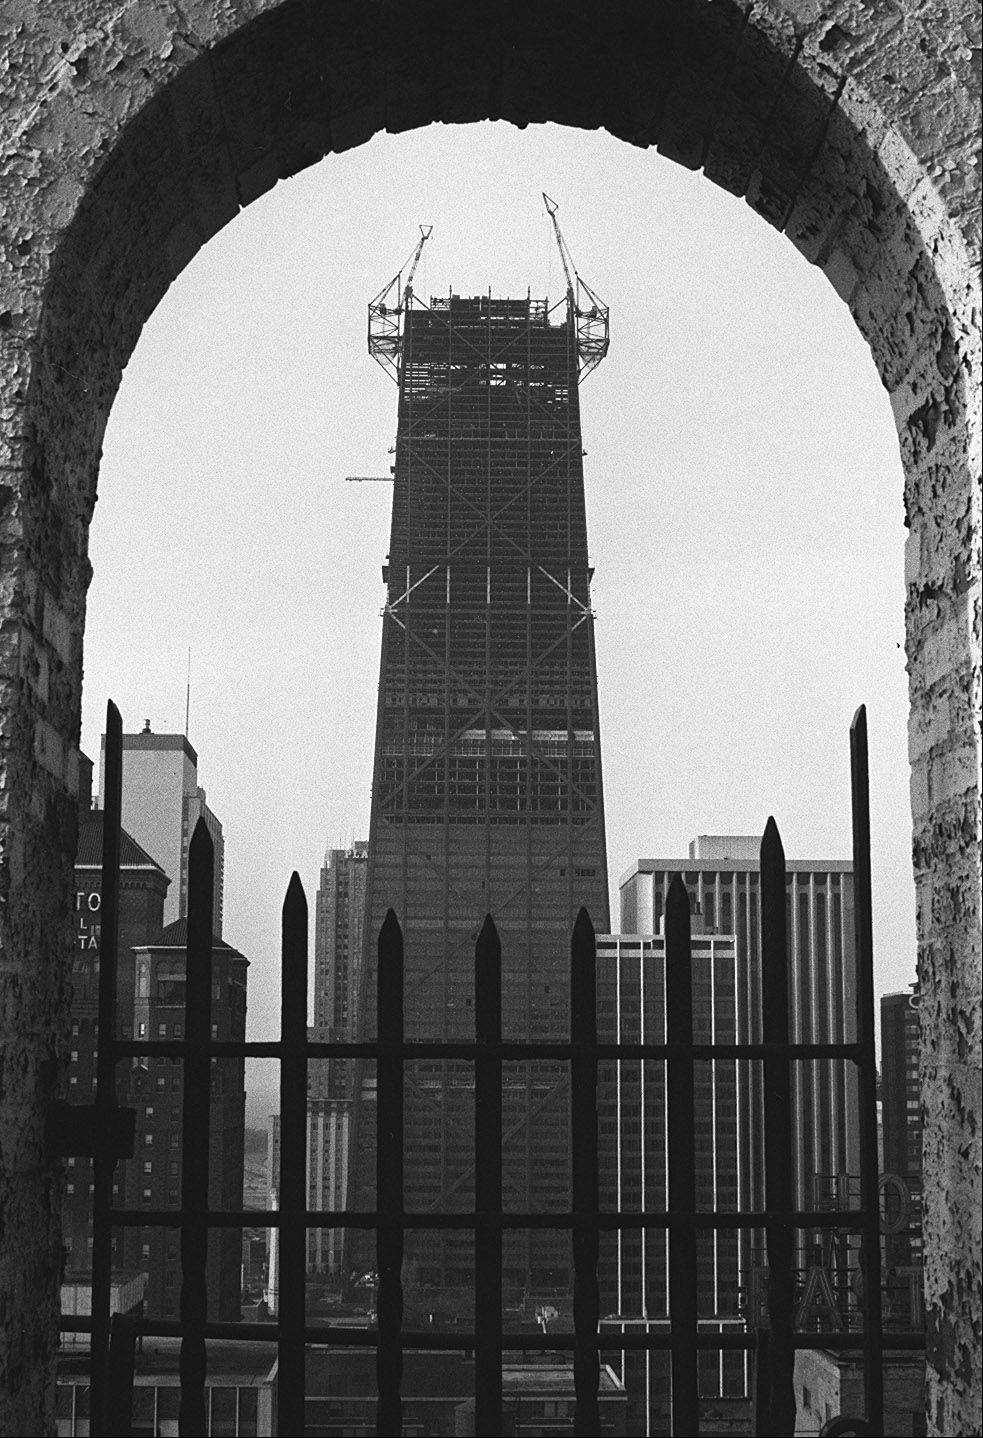 One of the assignments Tom enjoyed was photographing the Hancock building going up in Chicago in April 1968.